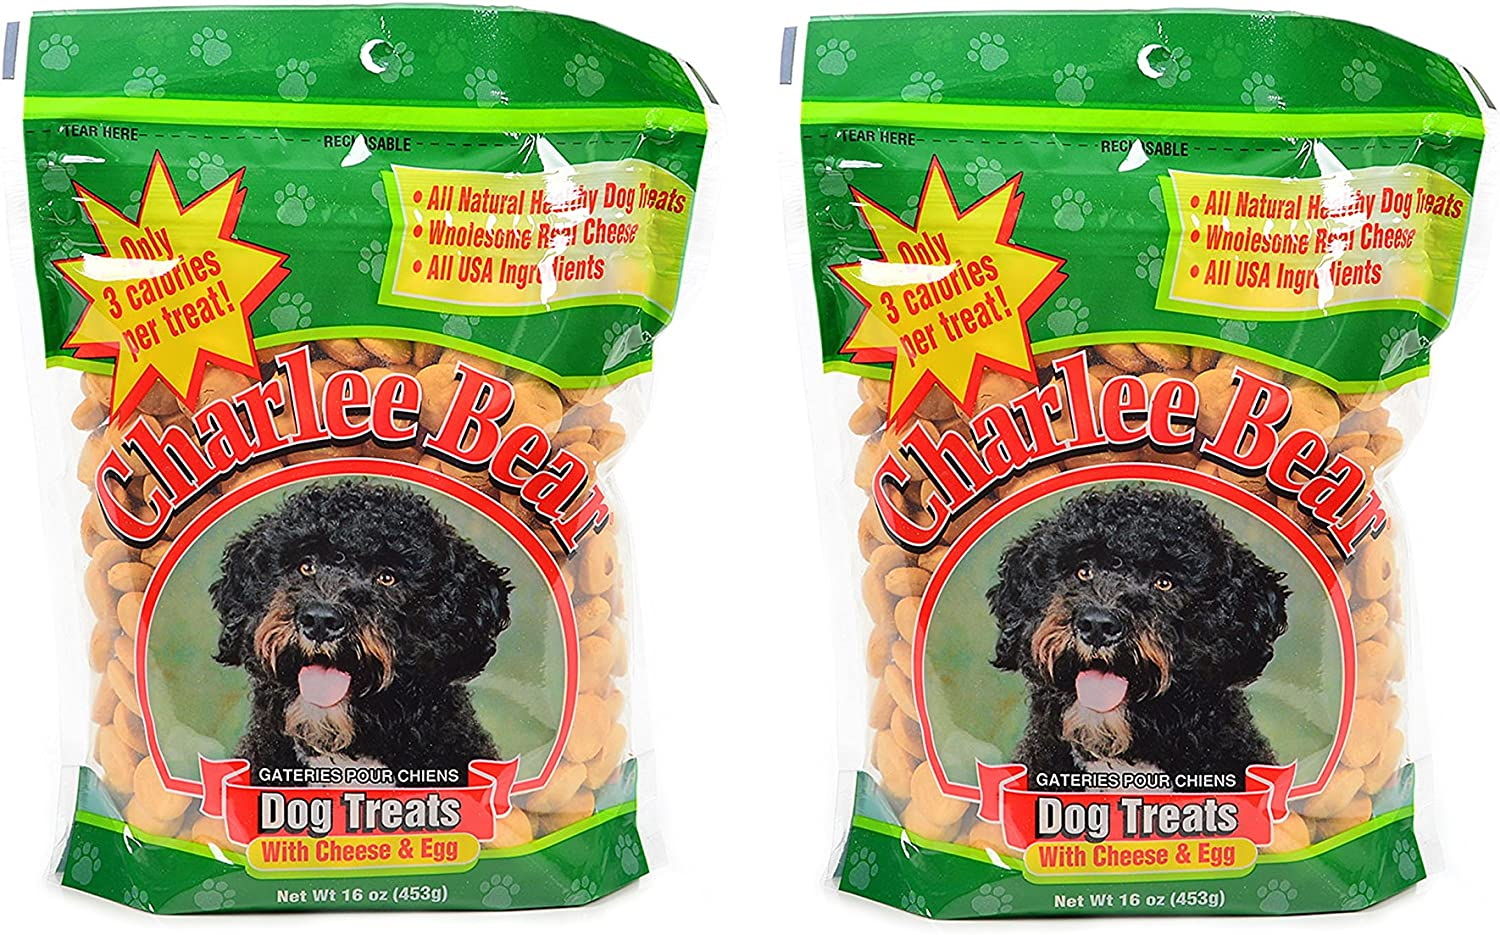 Charlee Bear Dog Treat with Cheese & Egg (2 Pack) 16 oz Each